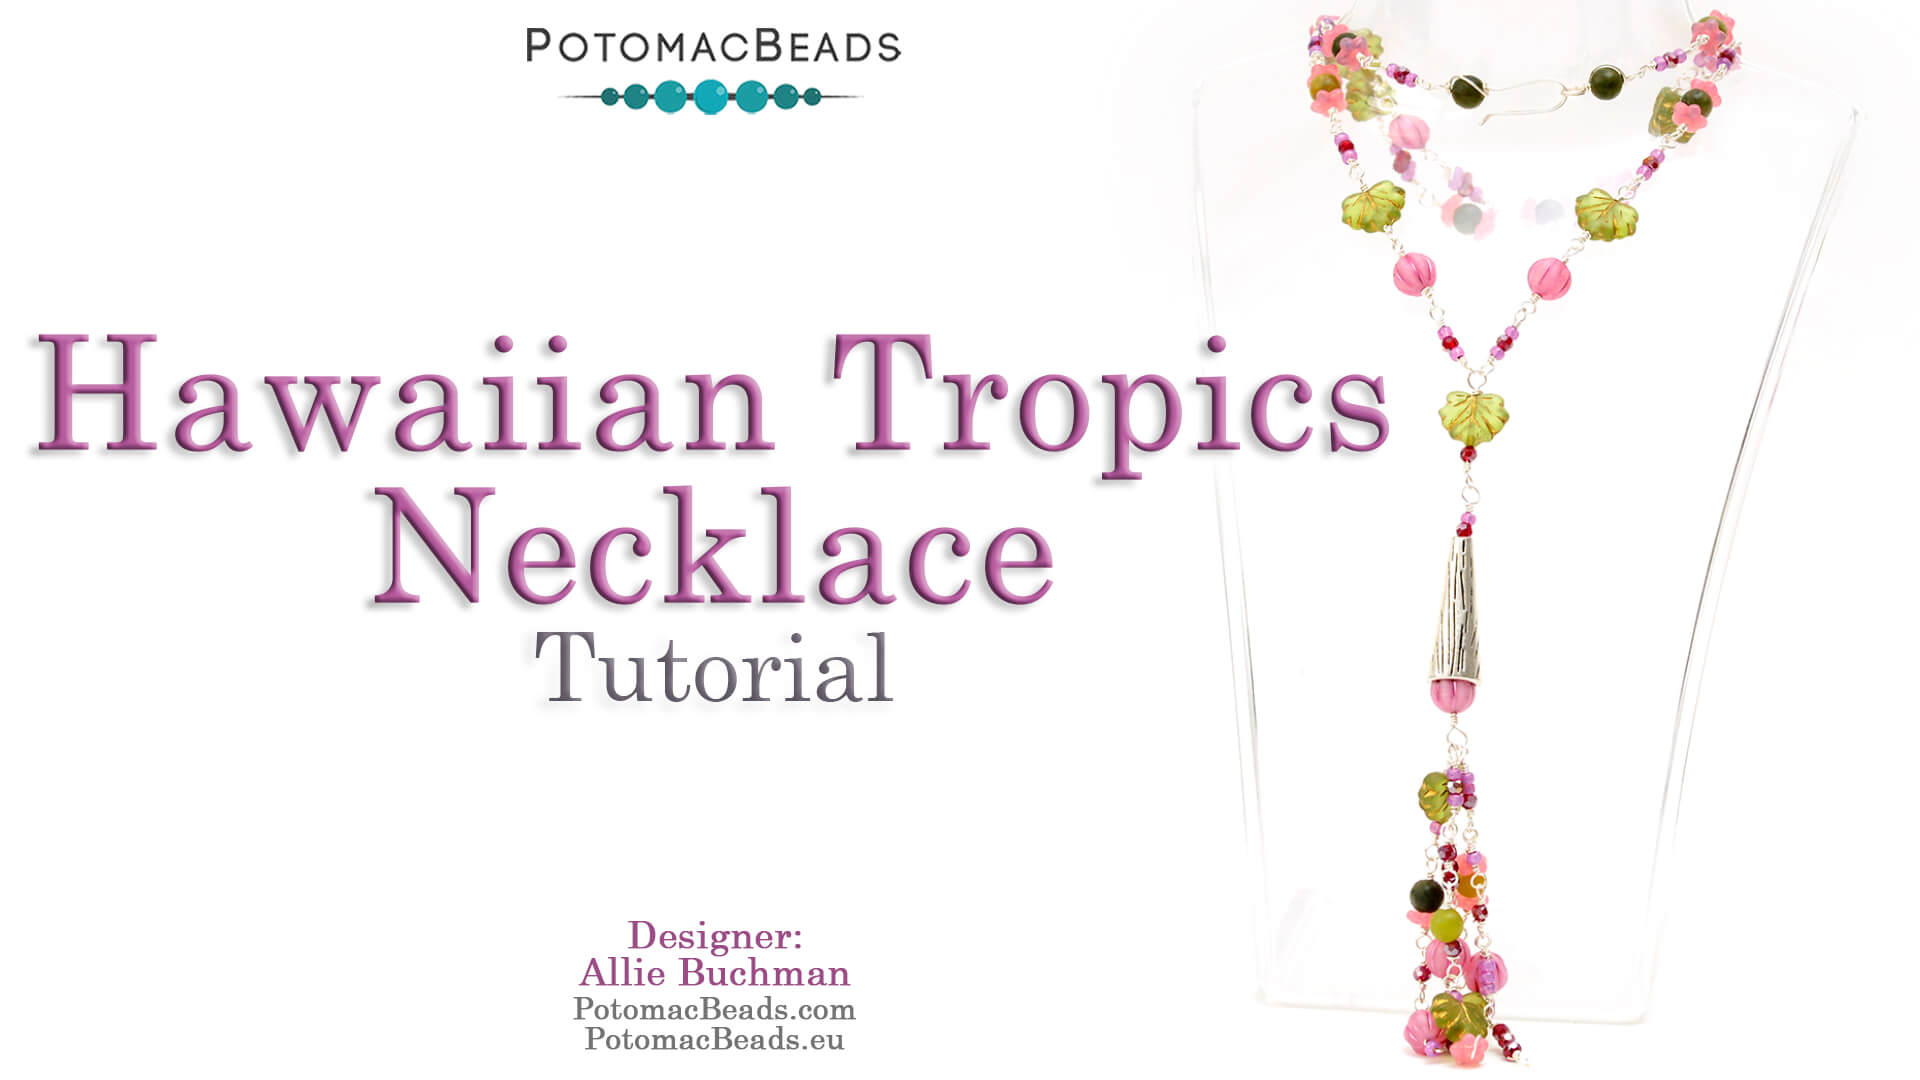 How to Bead / Videos Sorted by Beads / Gemstone Videos / Hawaiian Tropics Necklace Tutorial